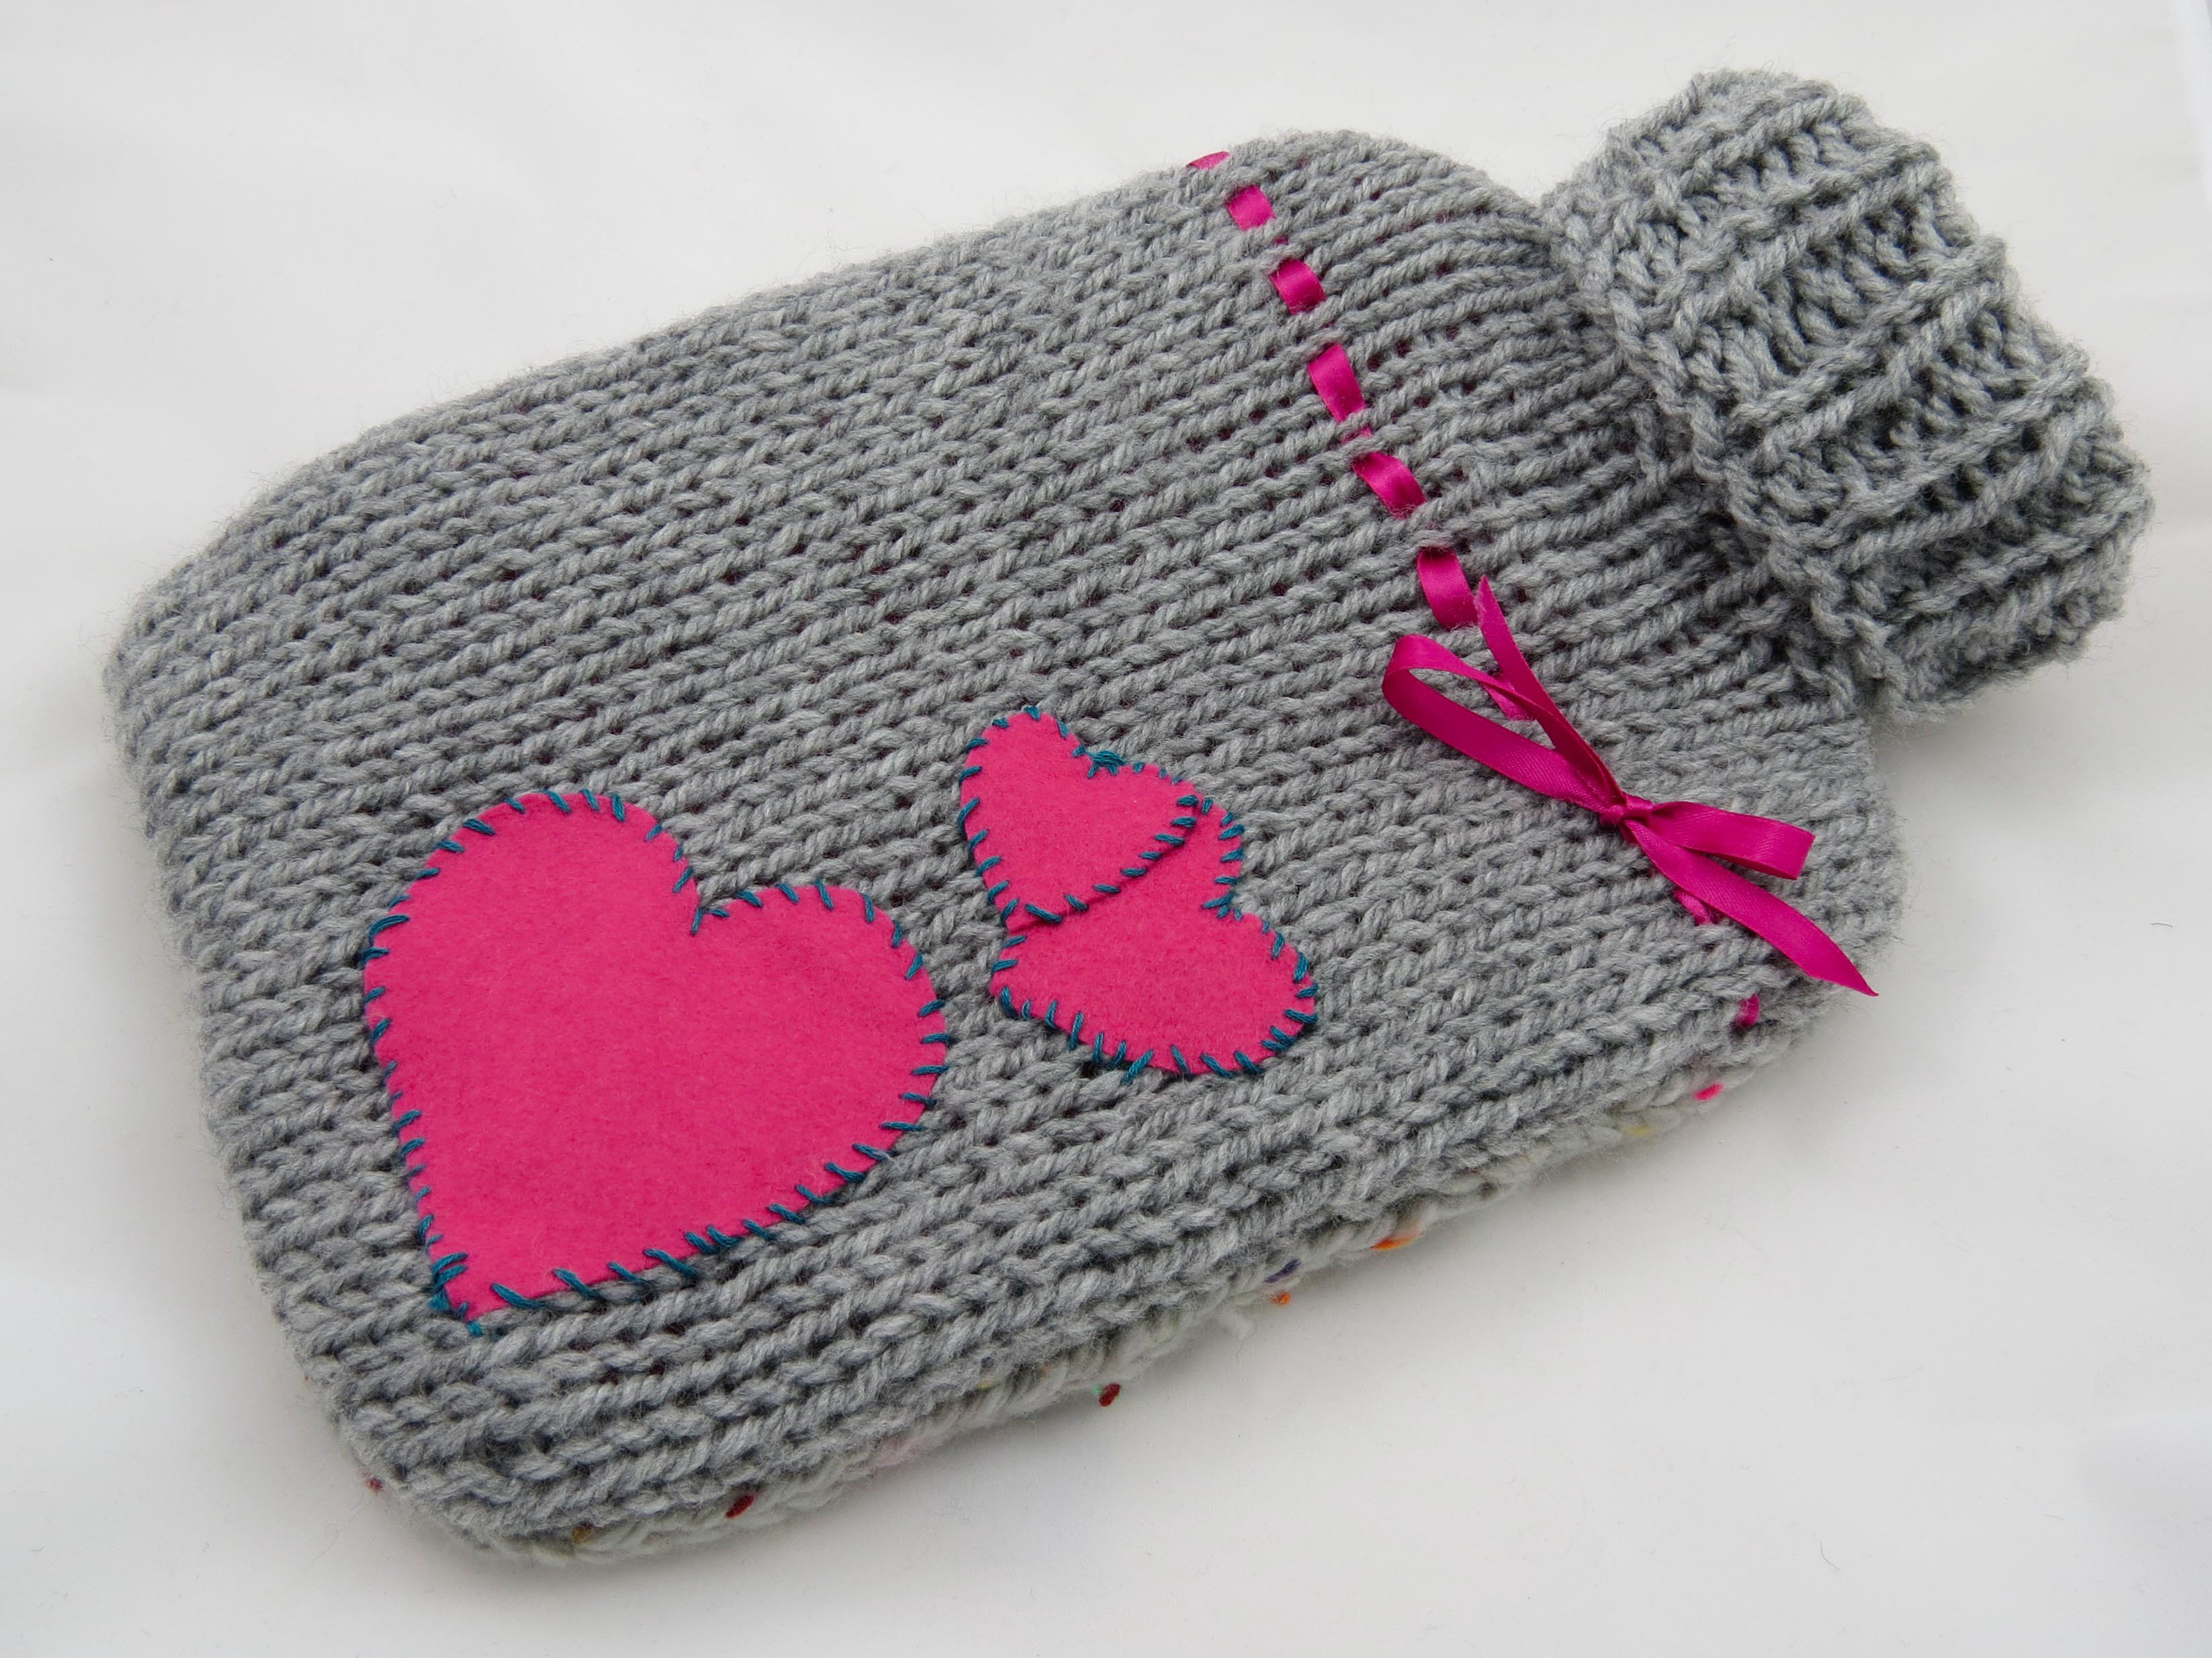 Free Knitting Patterns For Beginners Uk 8 Ply Free Knitting Pattern For Hot Water Bottle Cover